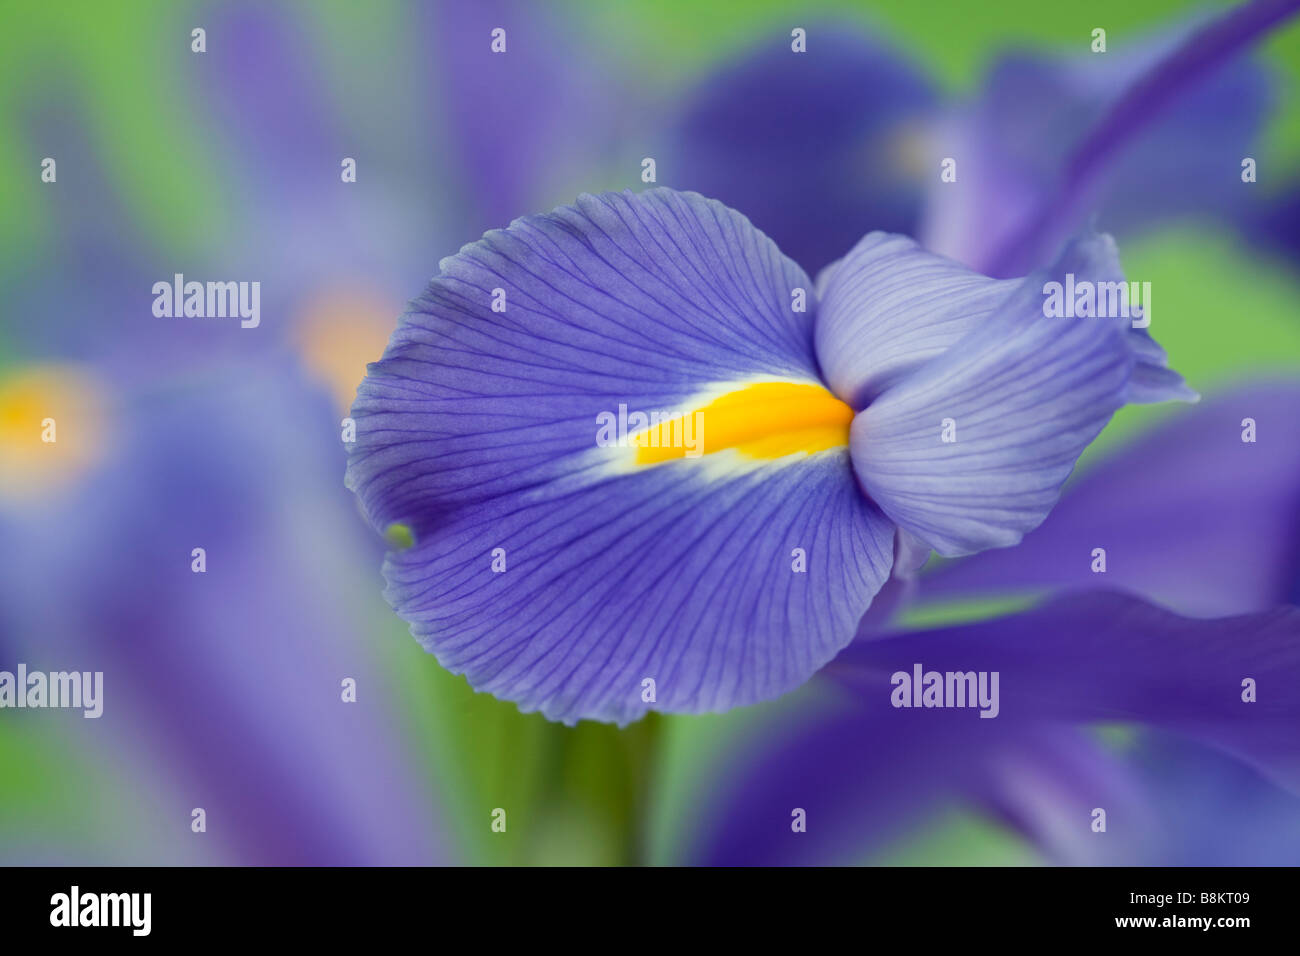 Studio still life floral July Blue-violet Iris Iridaceae flowers close-up softly diffused - Stock Image